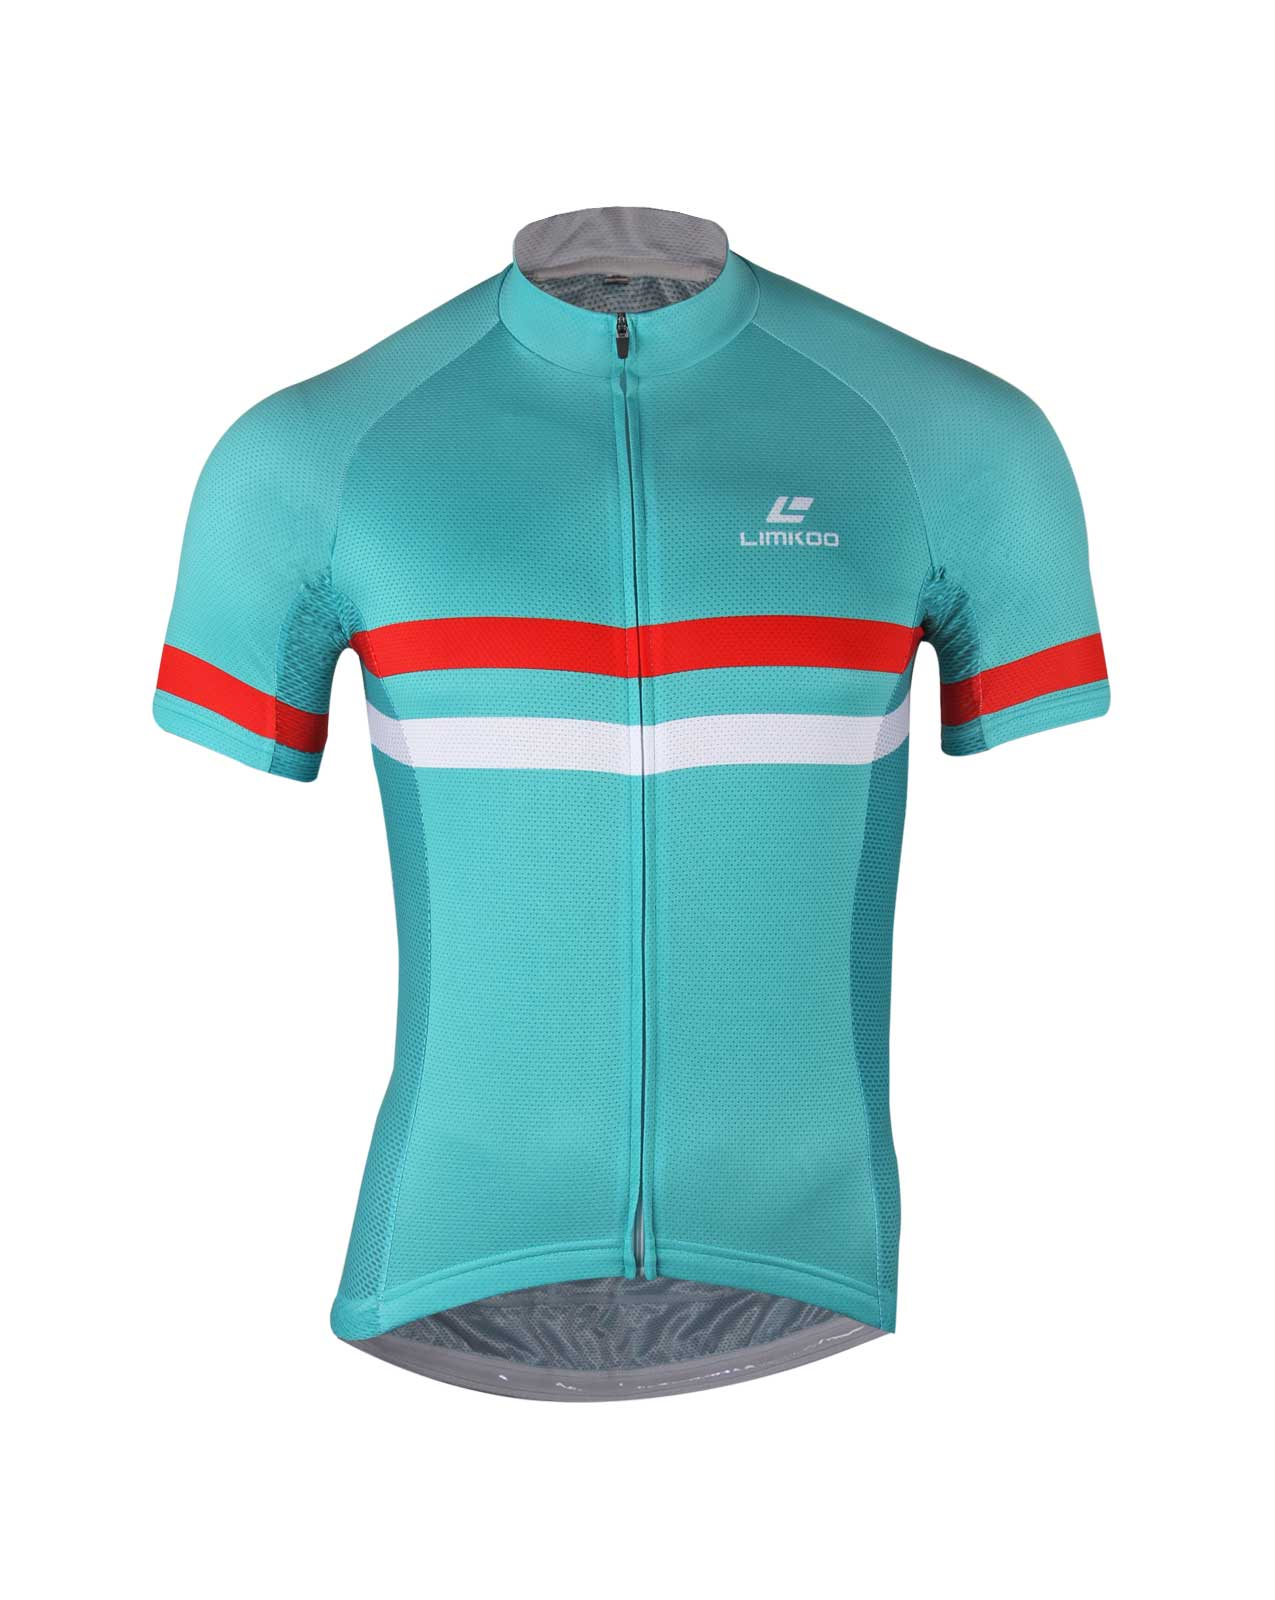 COOL AIR Short Sleeve Cycling Jersey